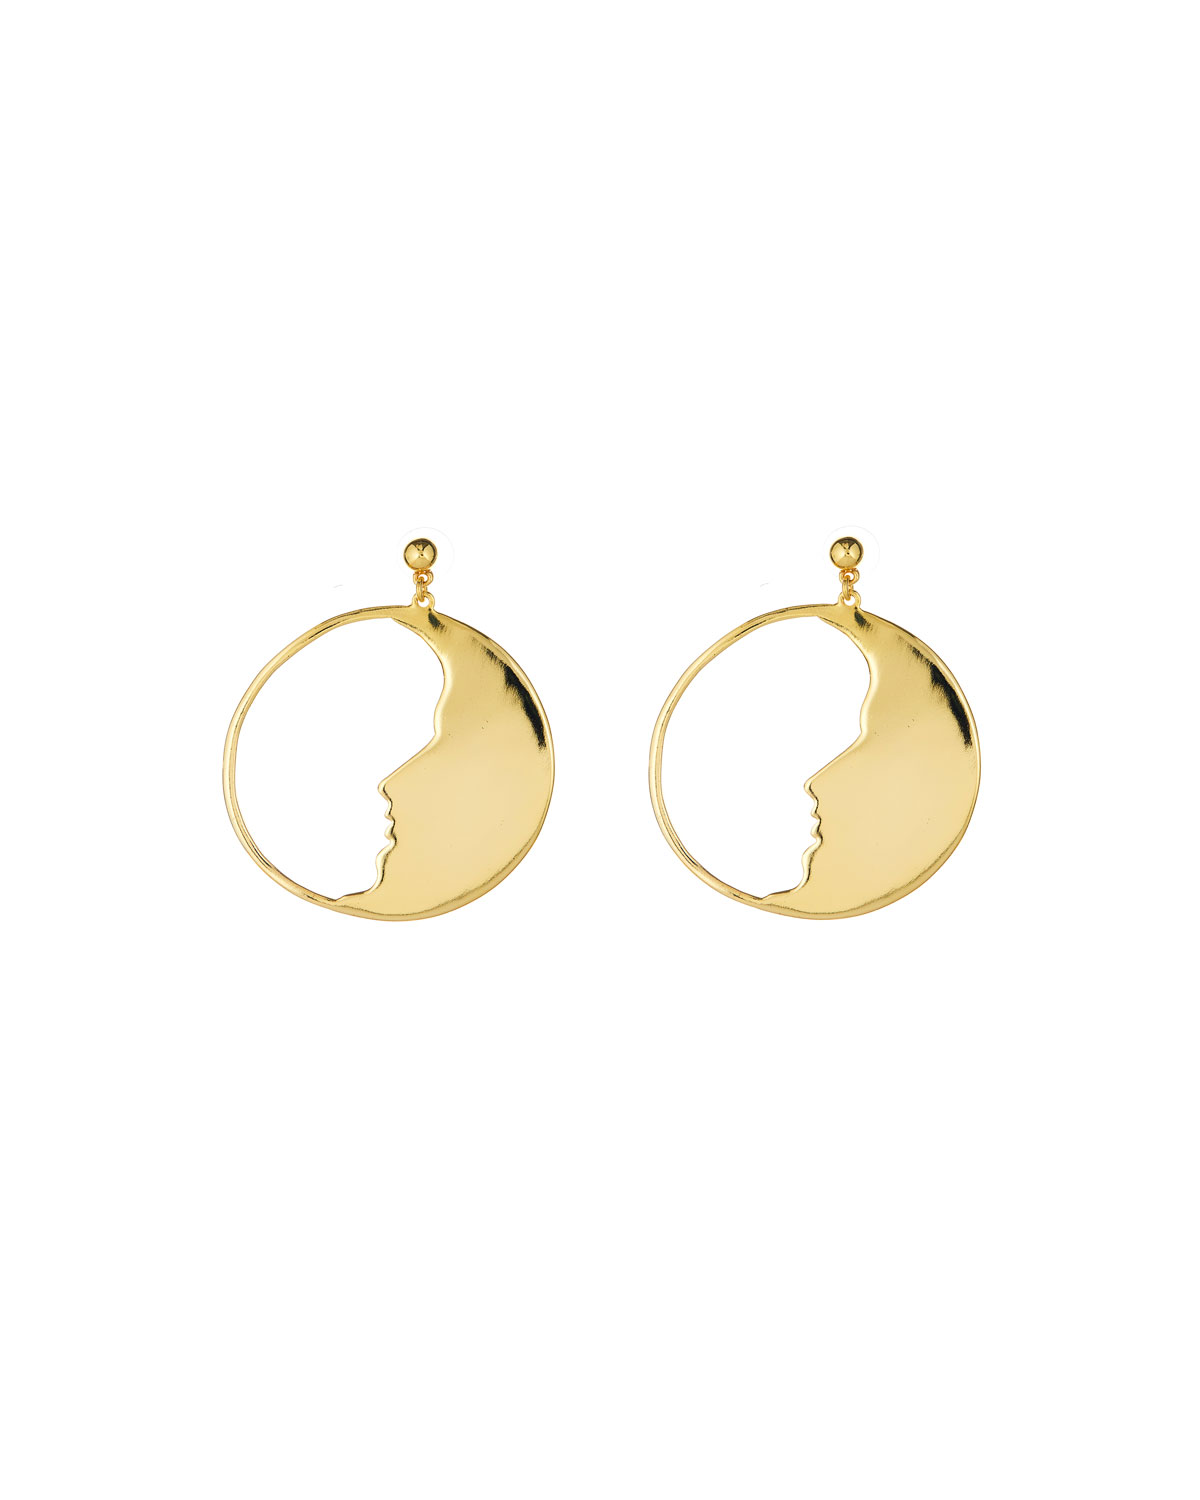 0829fd6b5afc1 Oscar de la Renta Large Moon Hoop Earrings